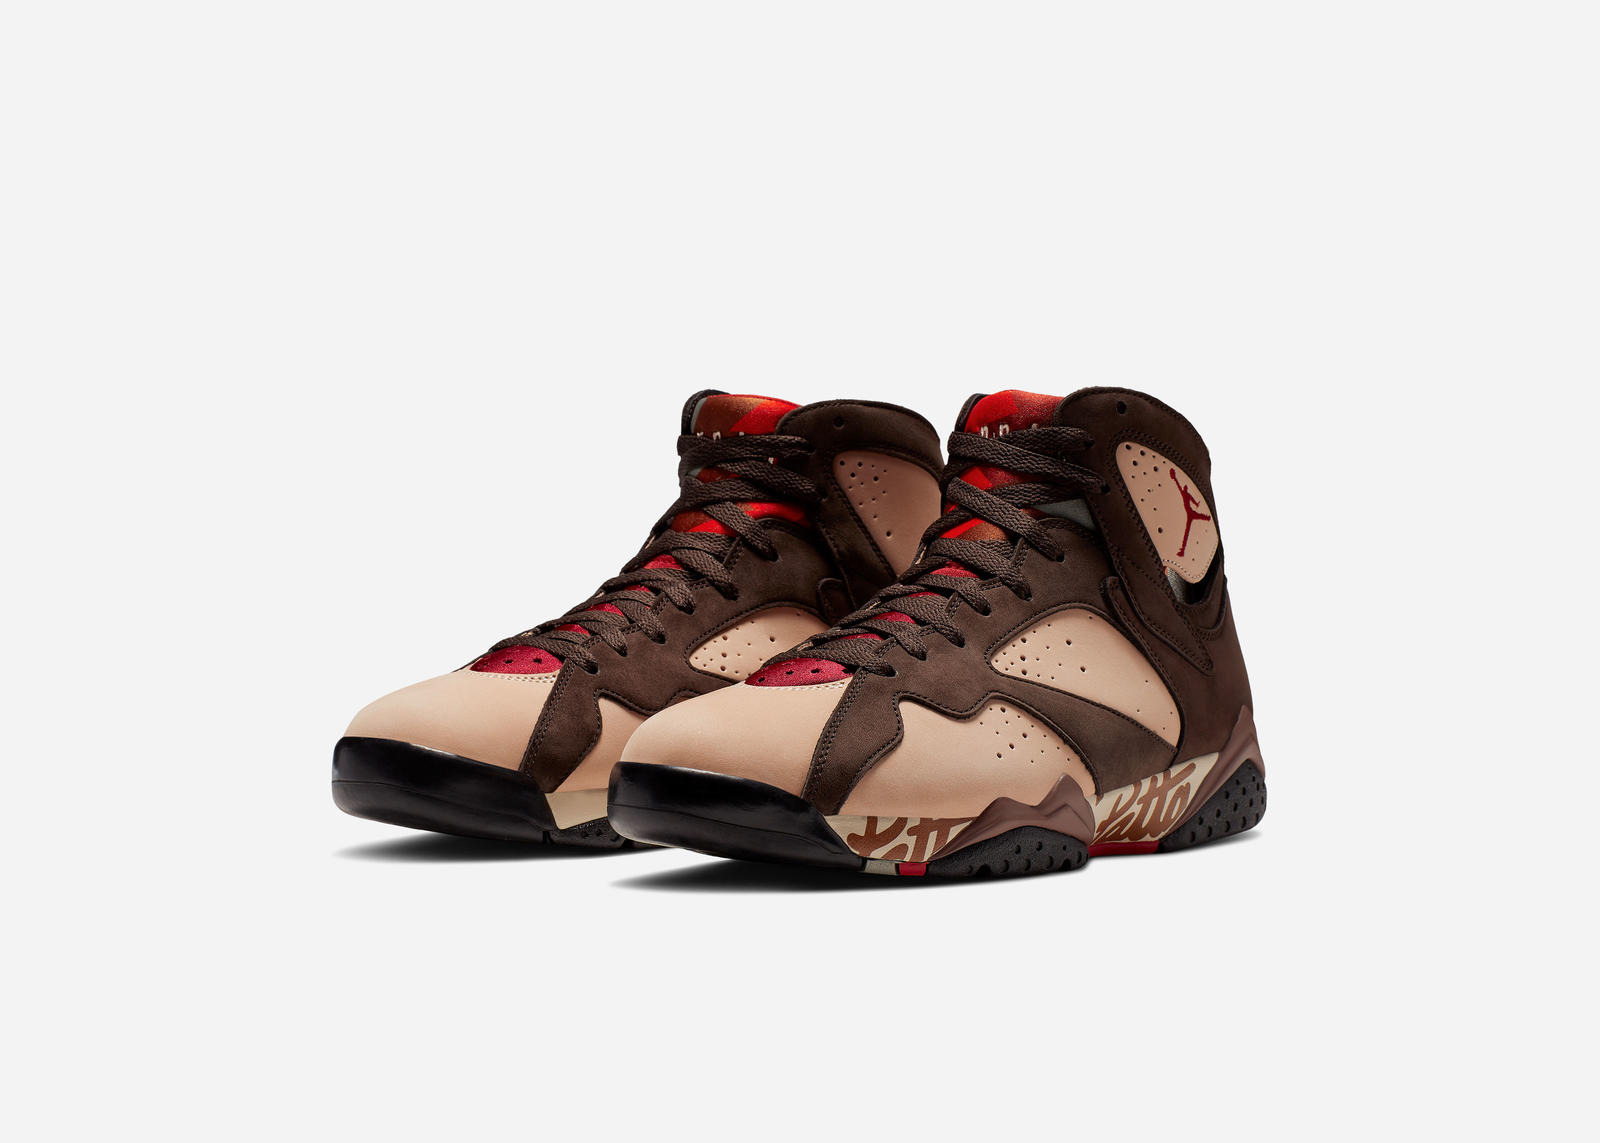 Air Jordan 7 Patta Official Images and Release Date 0